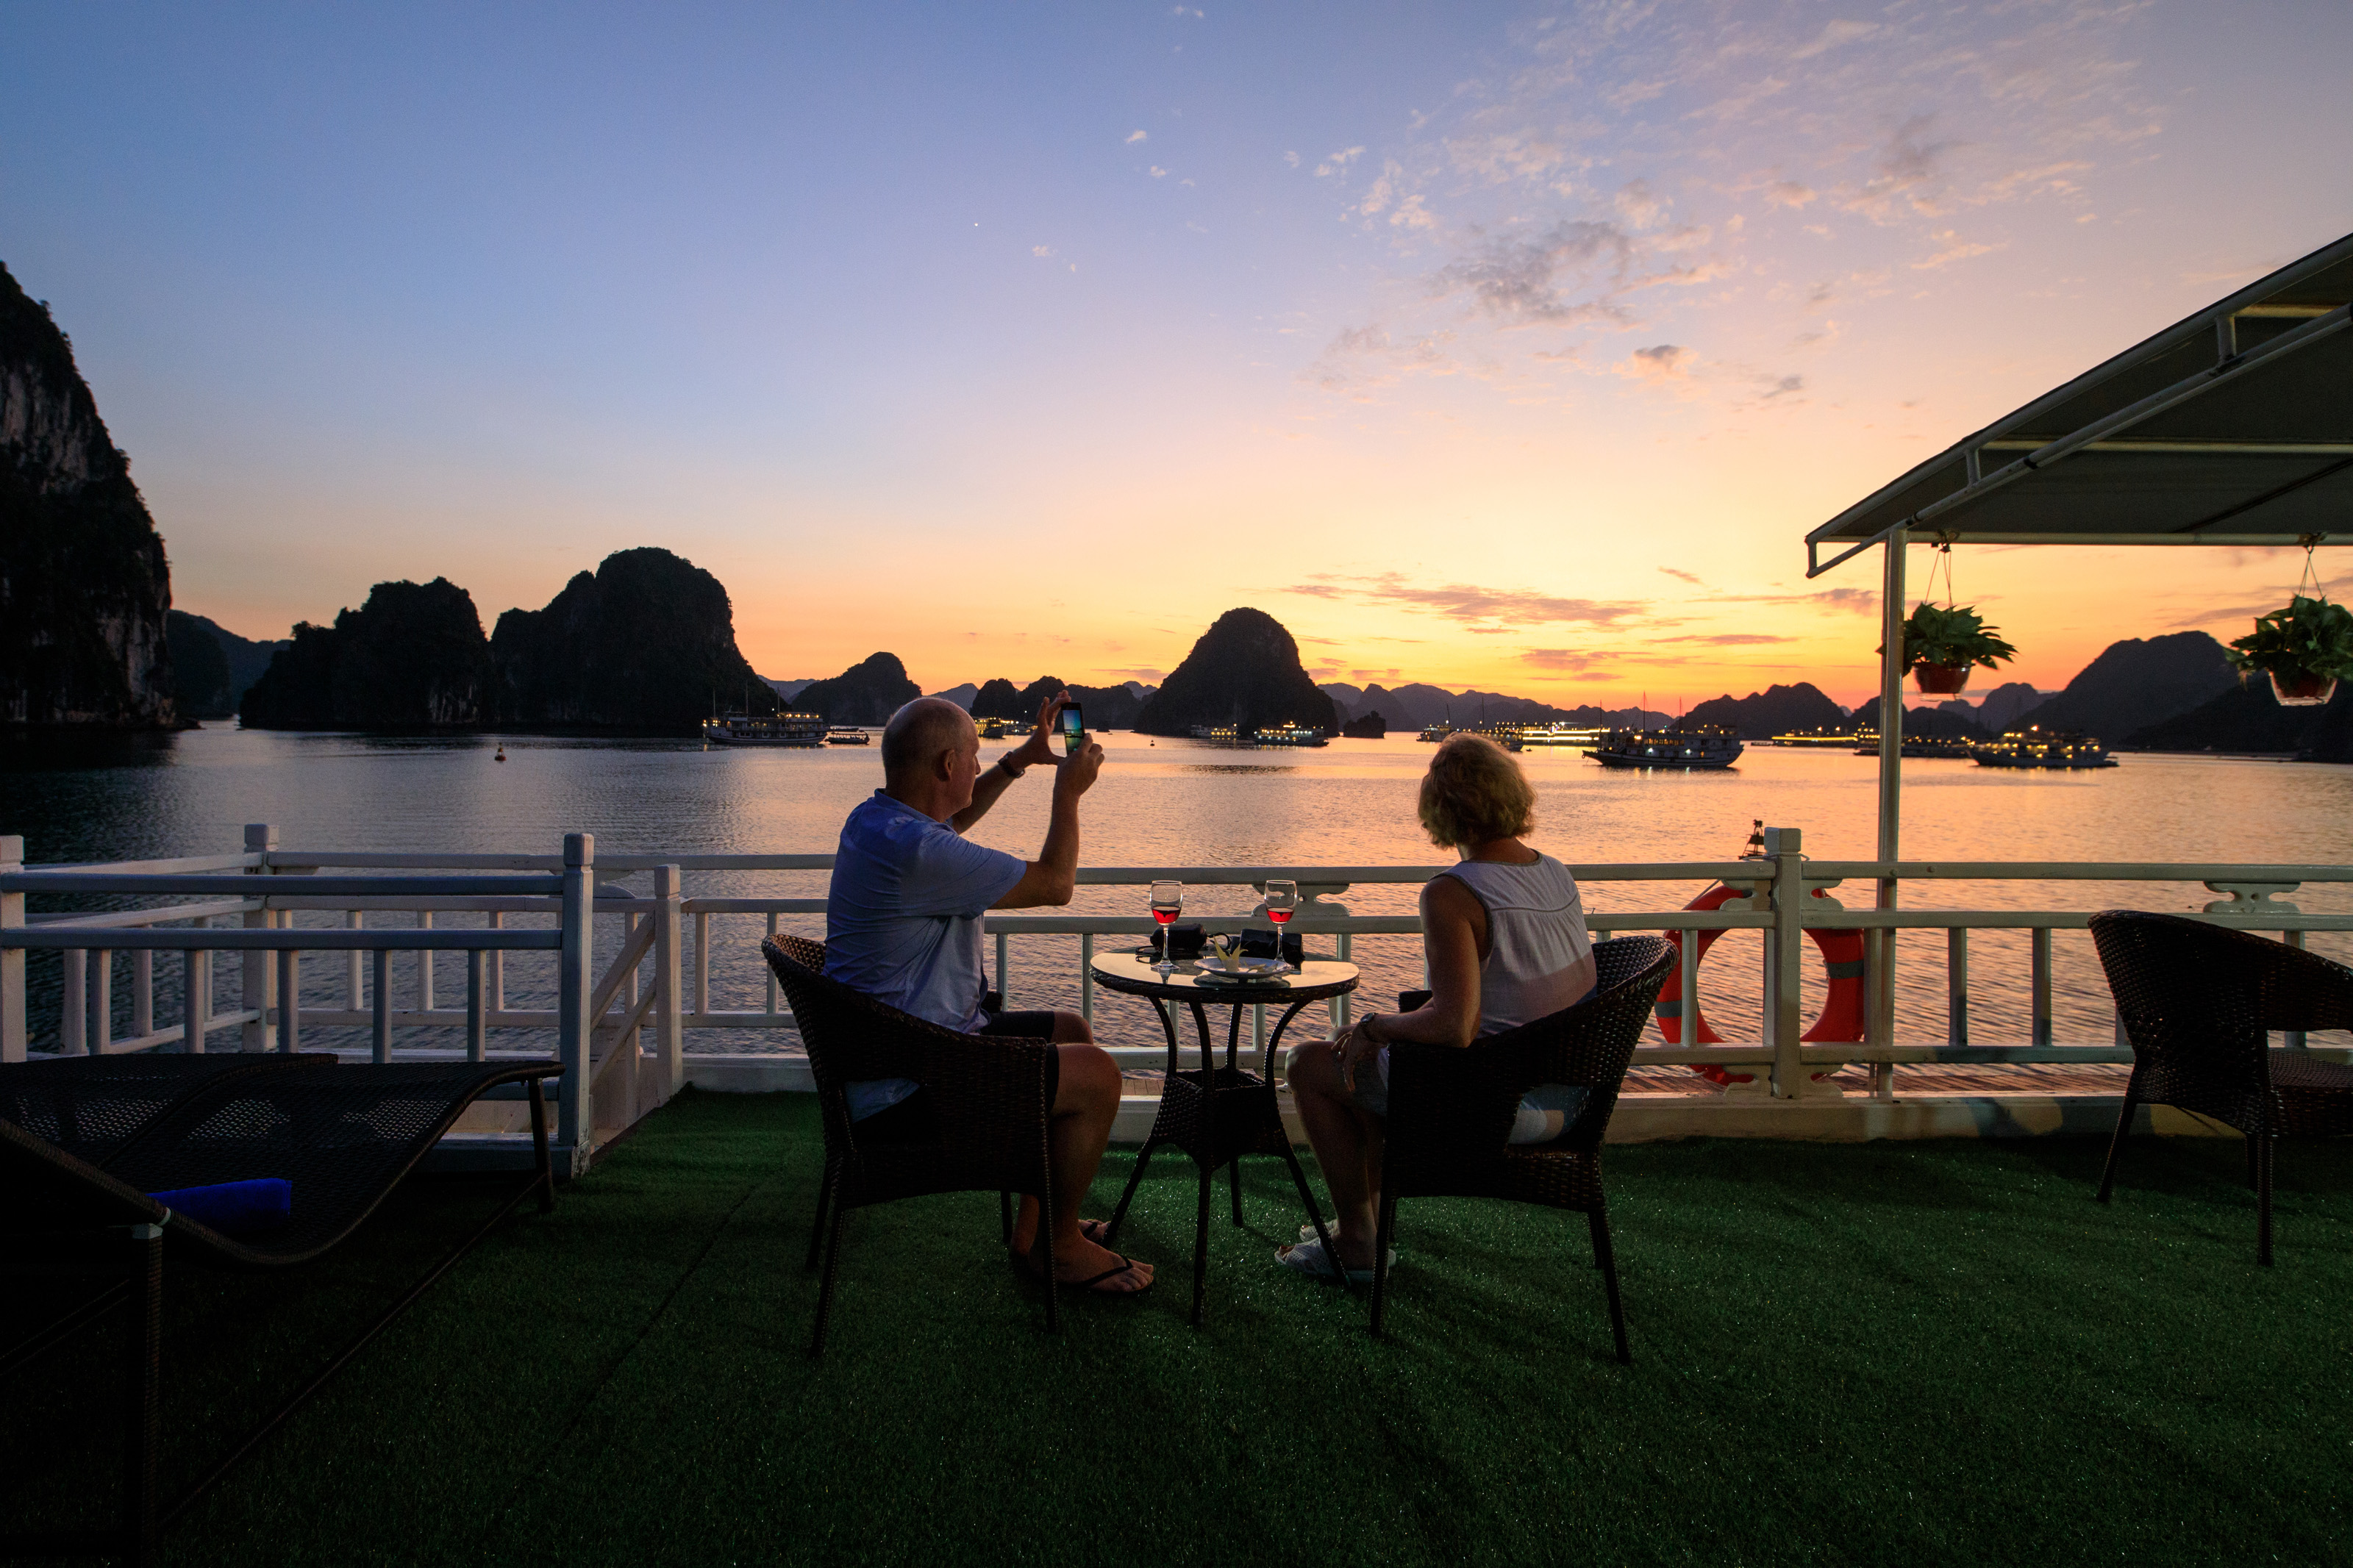 Halong Bay weather sunset party with cozy bay cruise